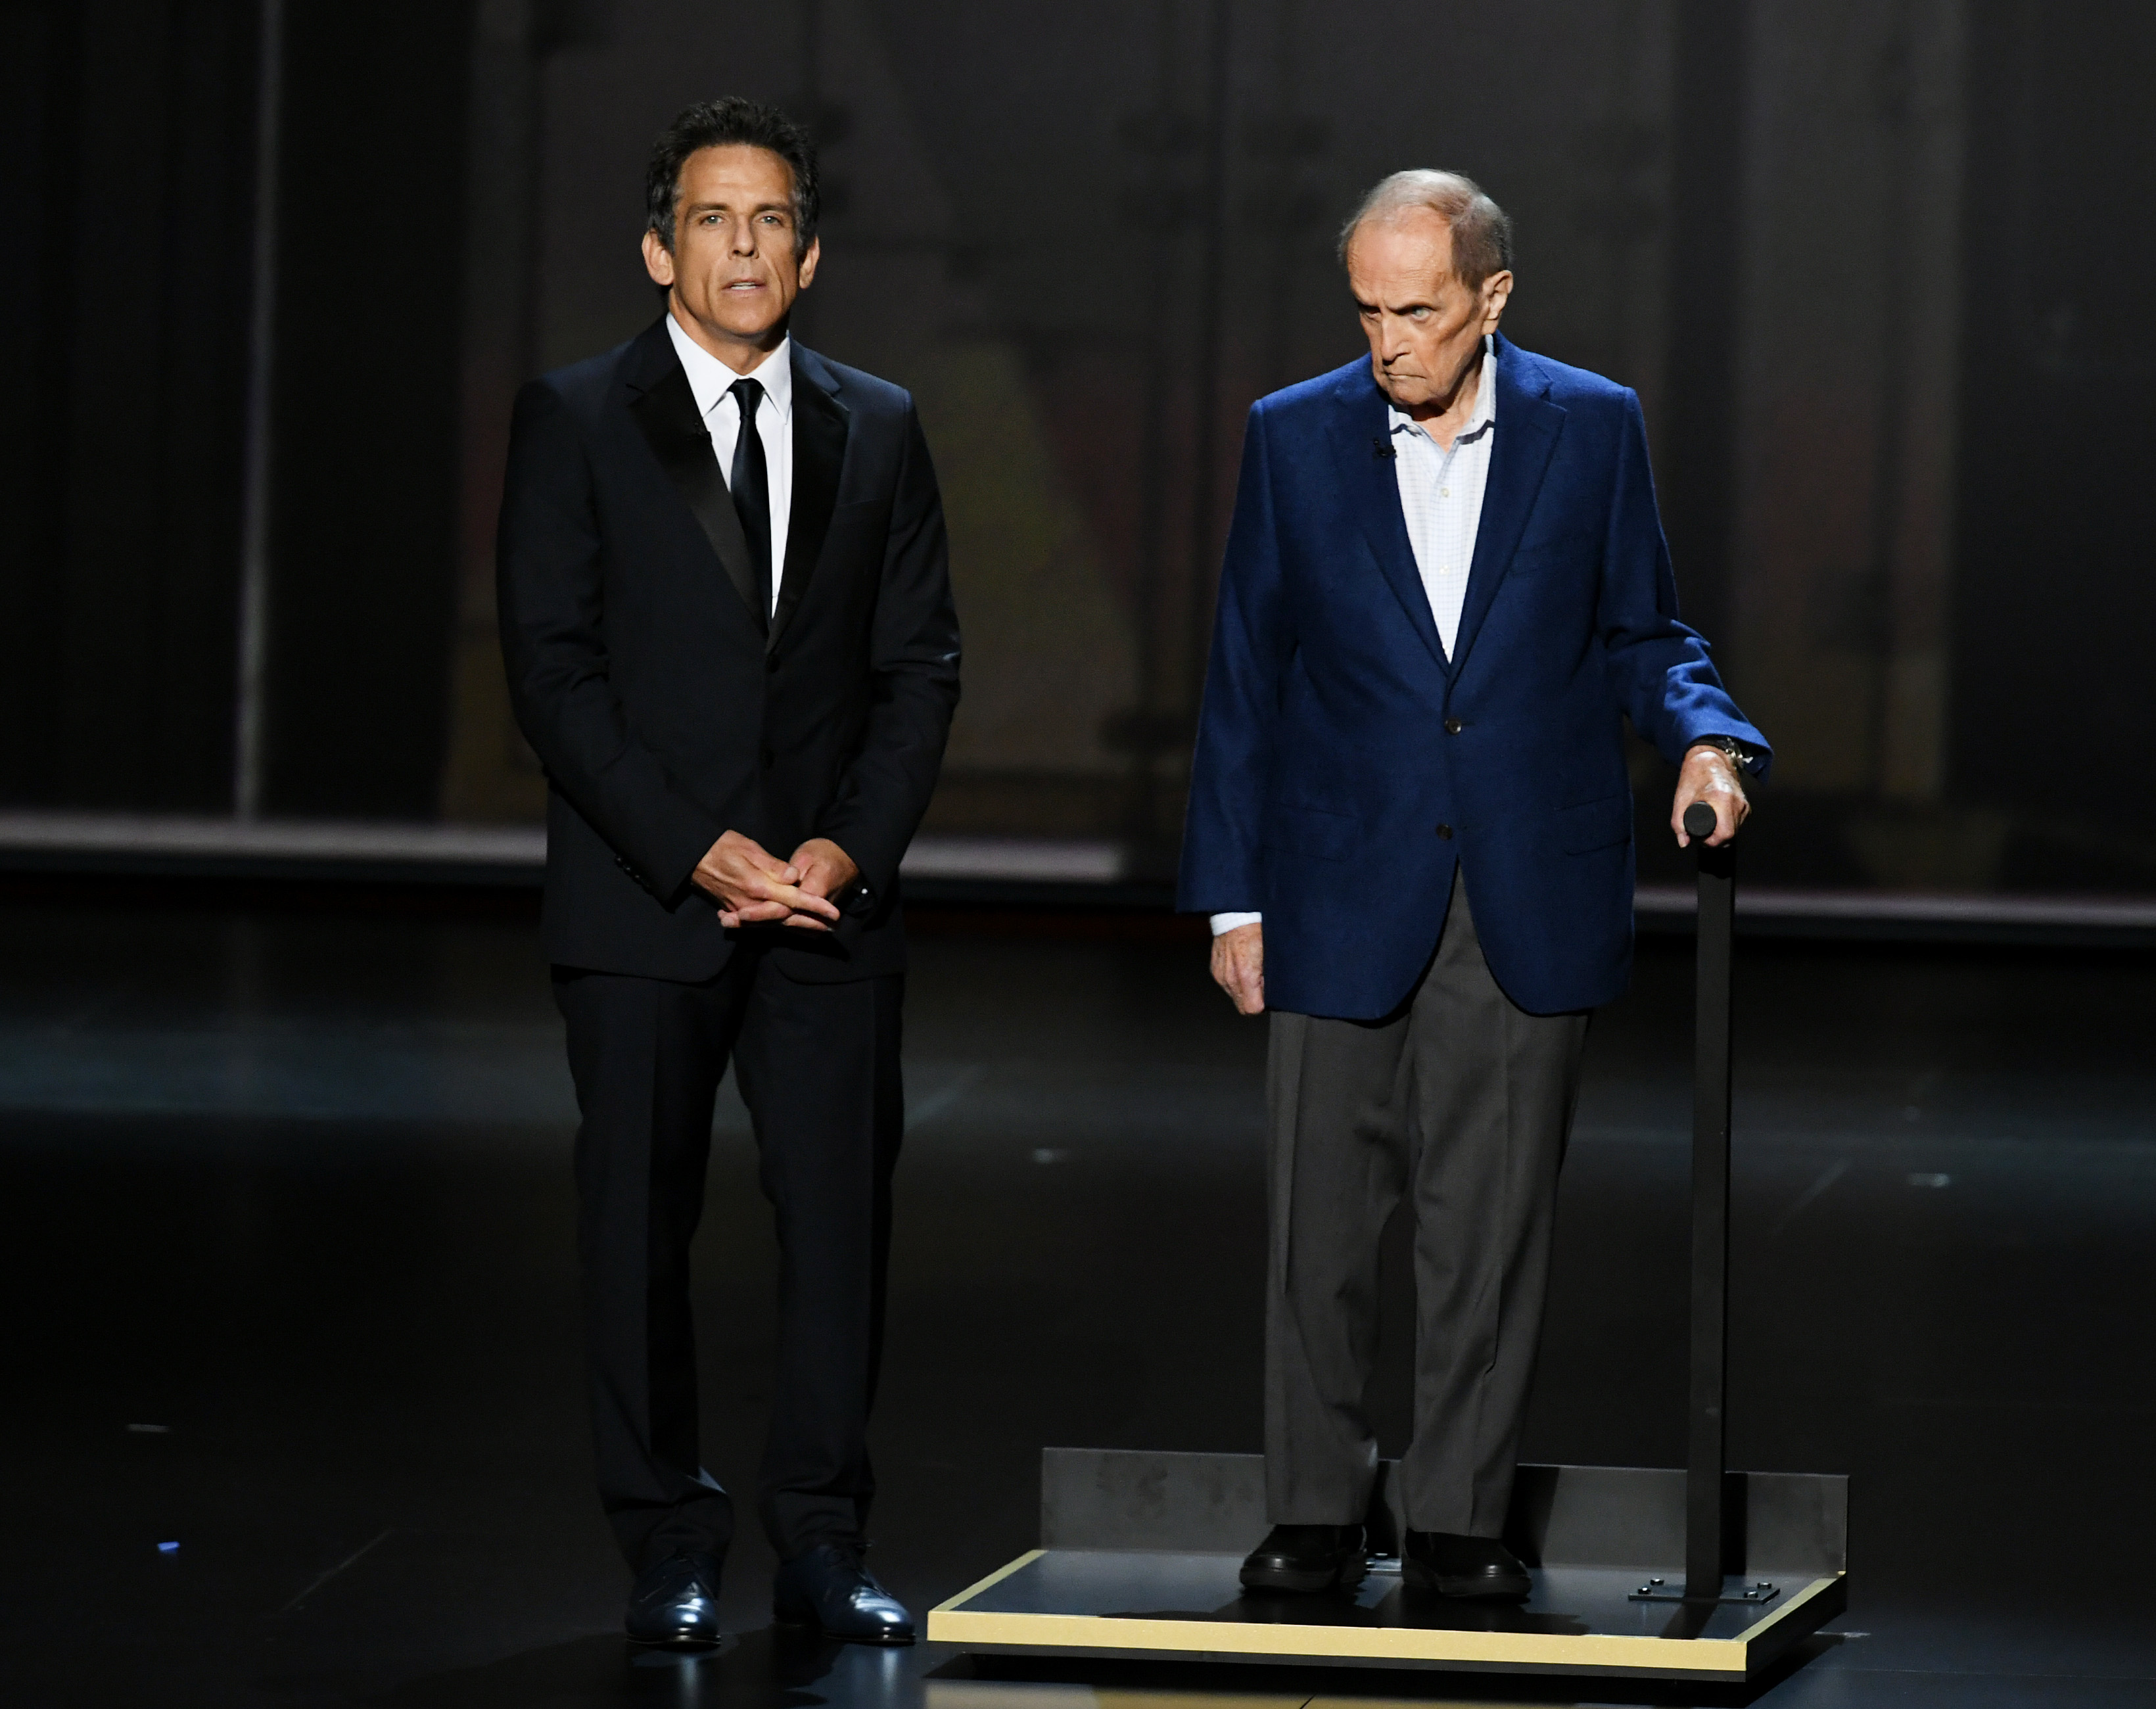 Ben Stiller and Bob Newhart during the 71st Emmy Awards at Microsoft Theater on September 22, 2019.